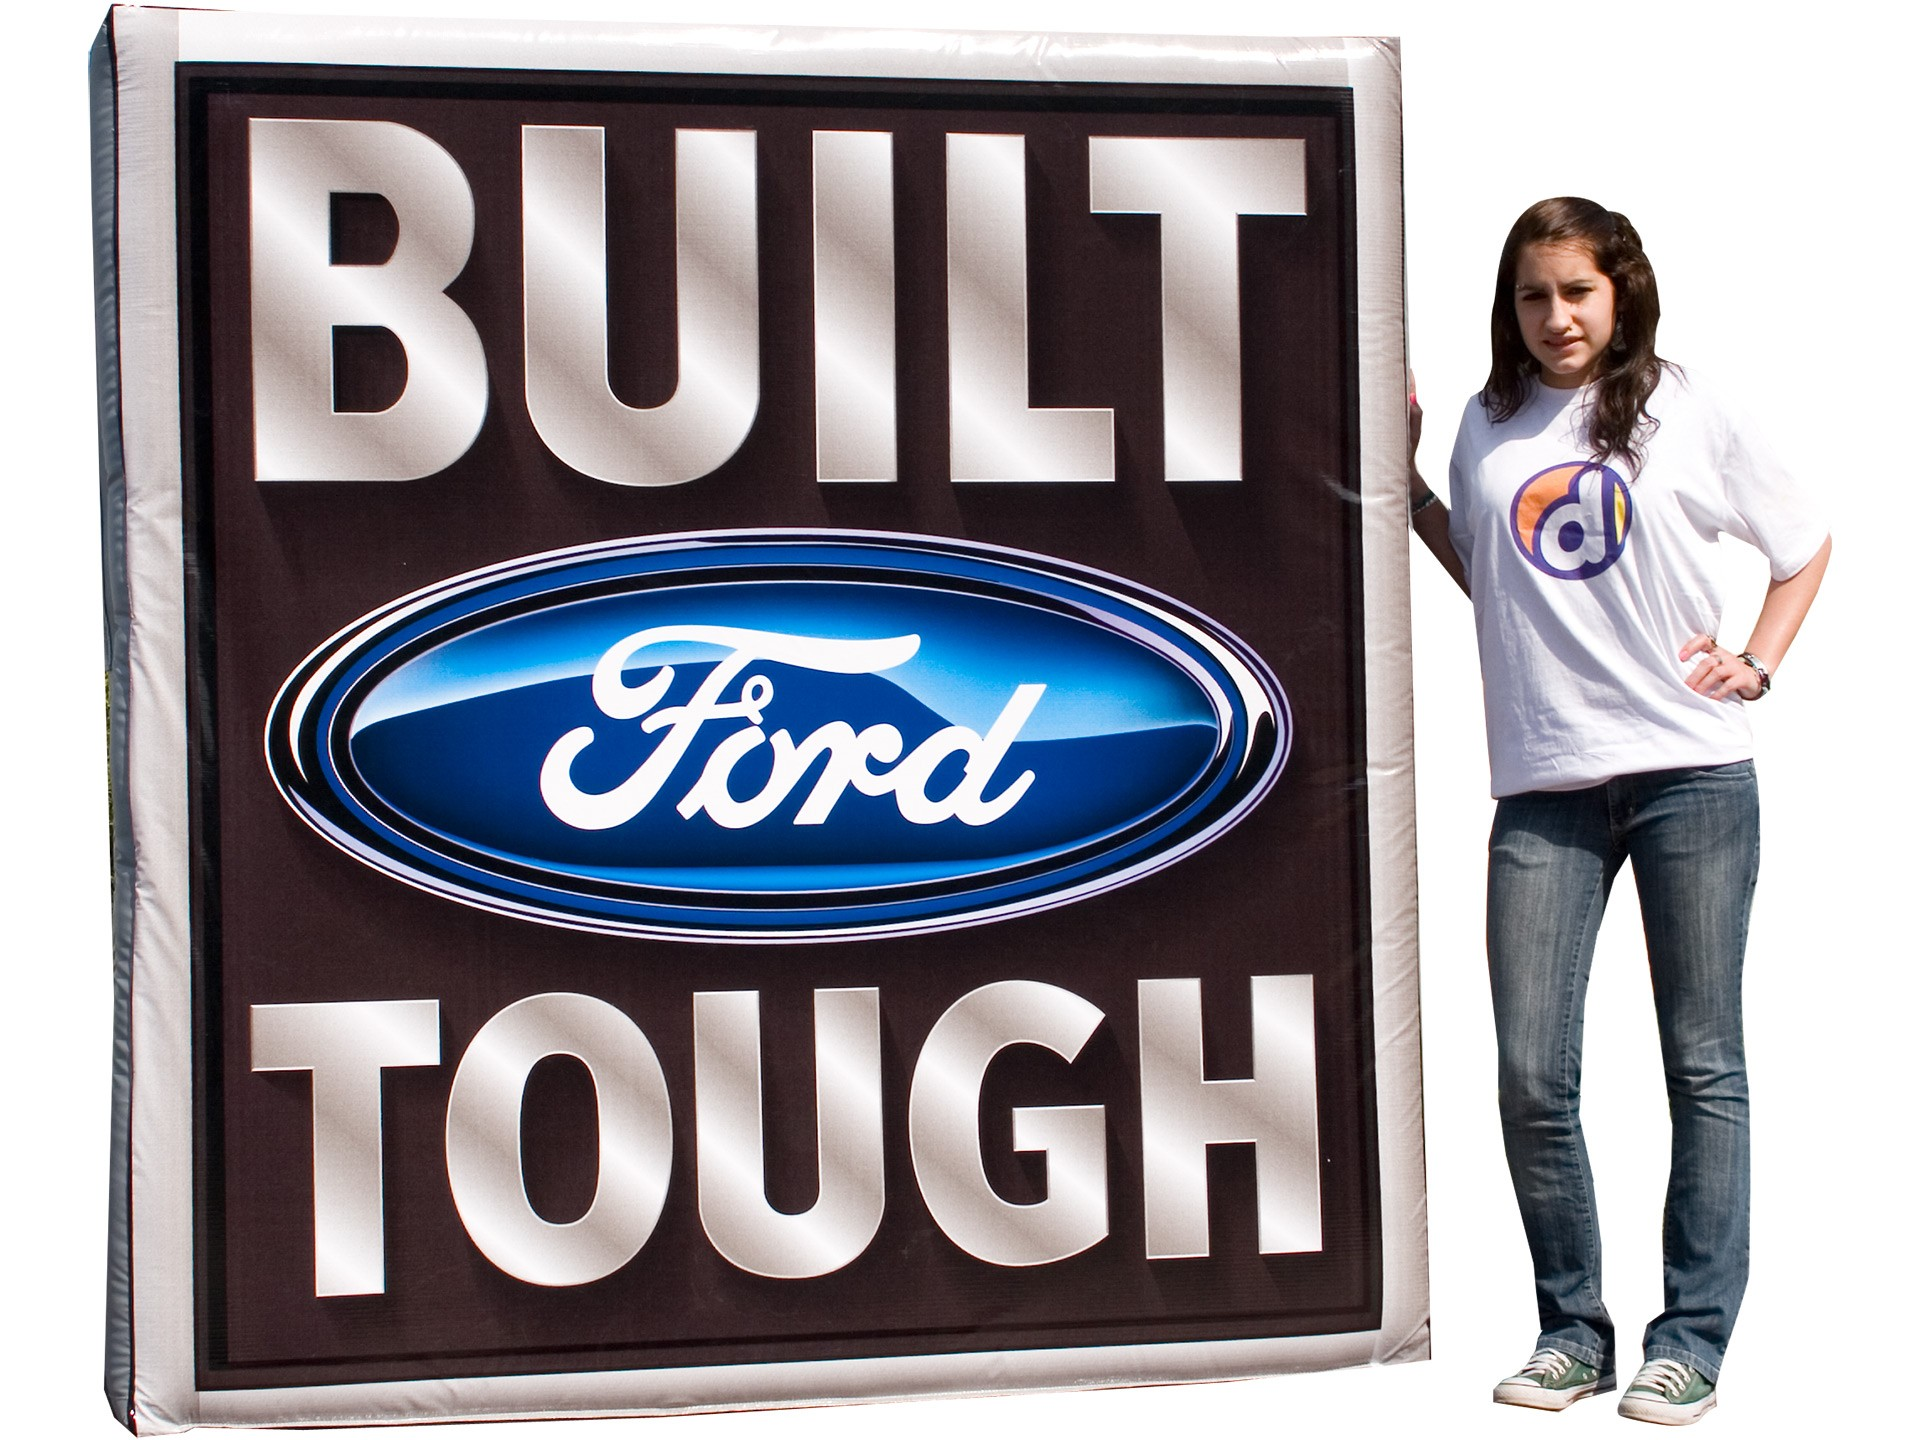 best images about Ford Trucks Built Ford Tough on Pinterest